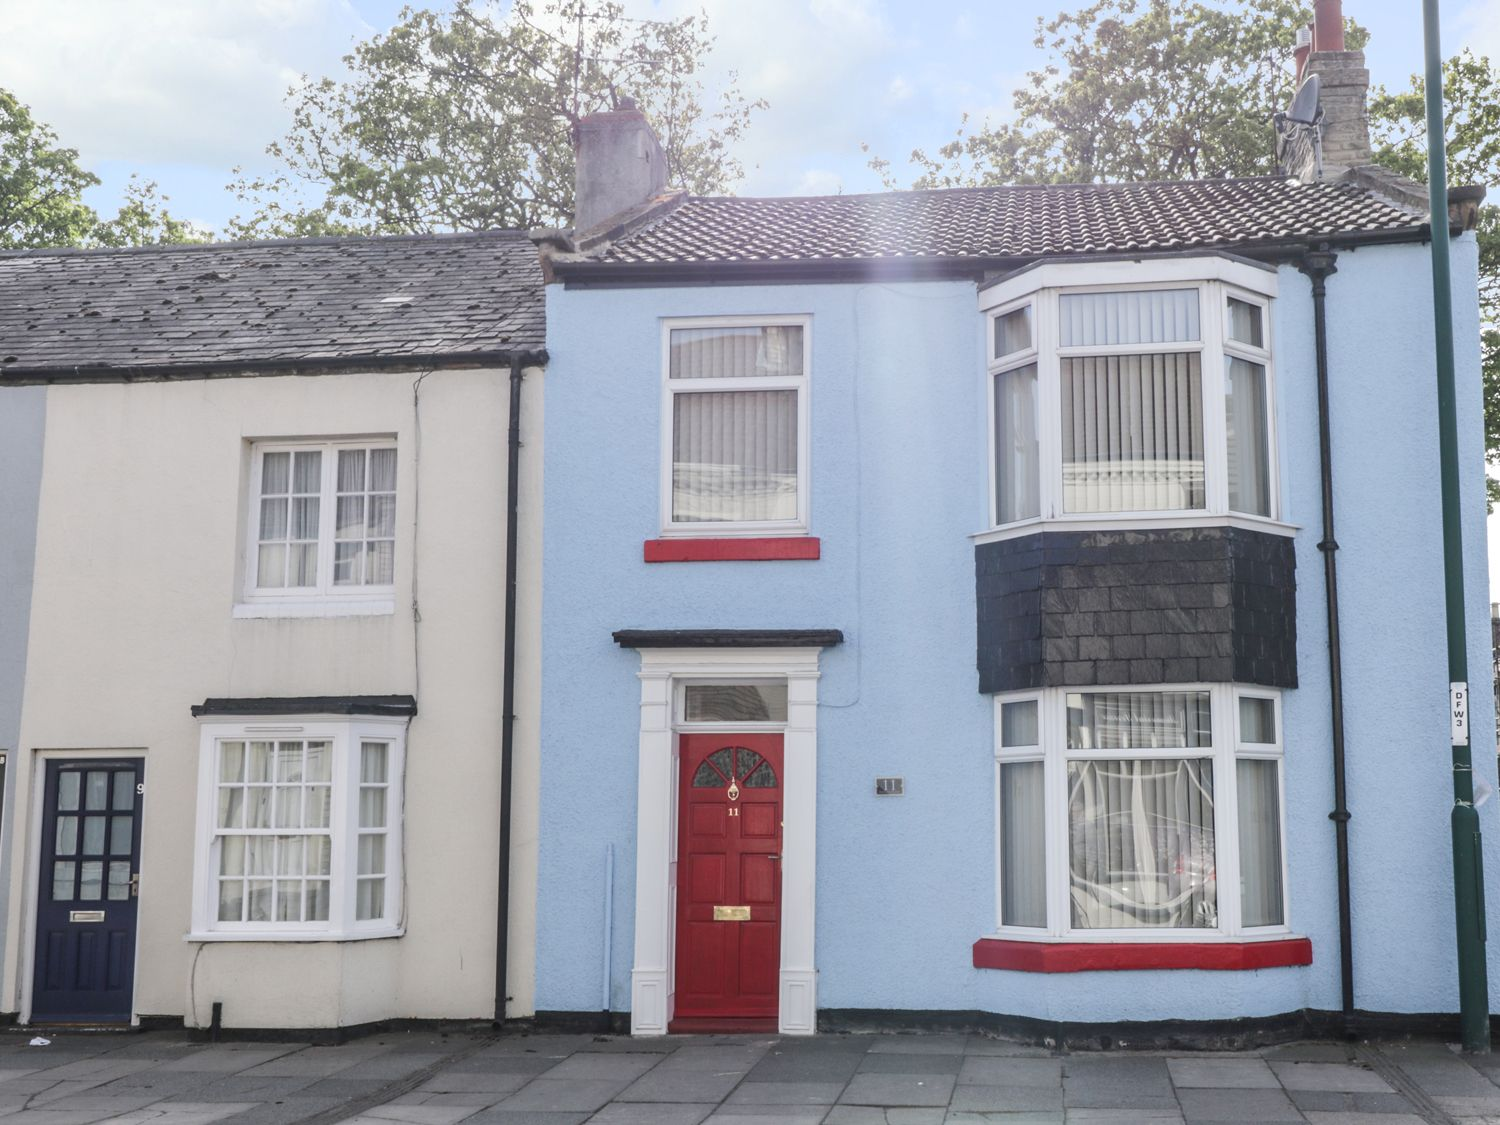 11 Redcar Road - Whitby & North Yorkshire - 990885 - photo 1